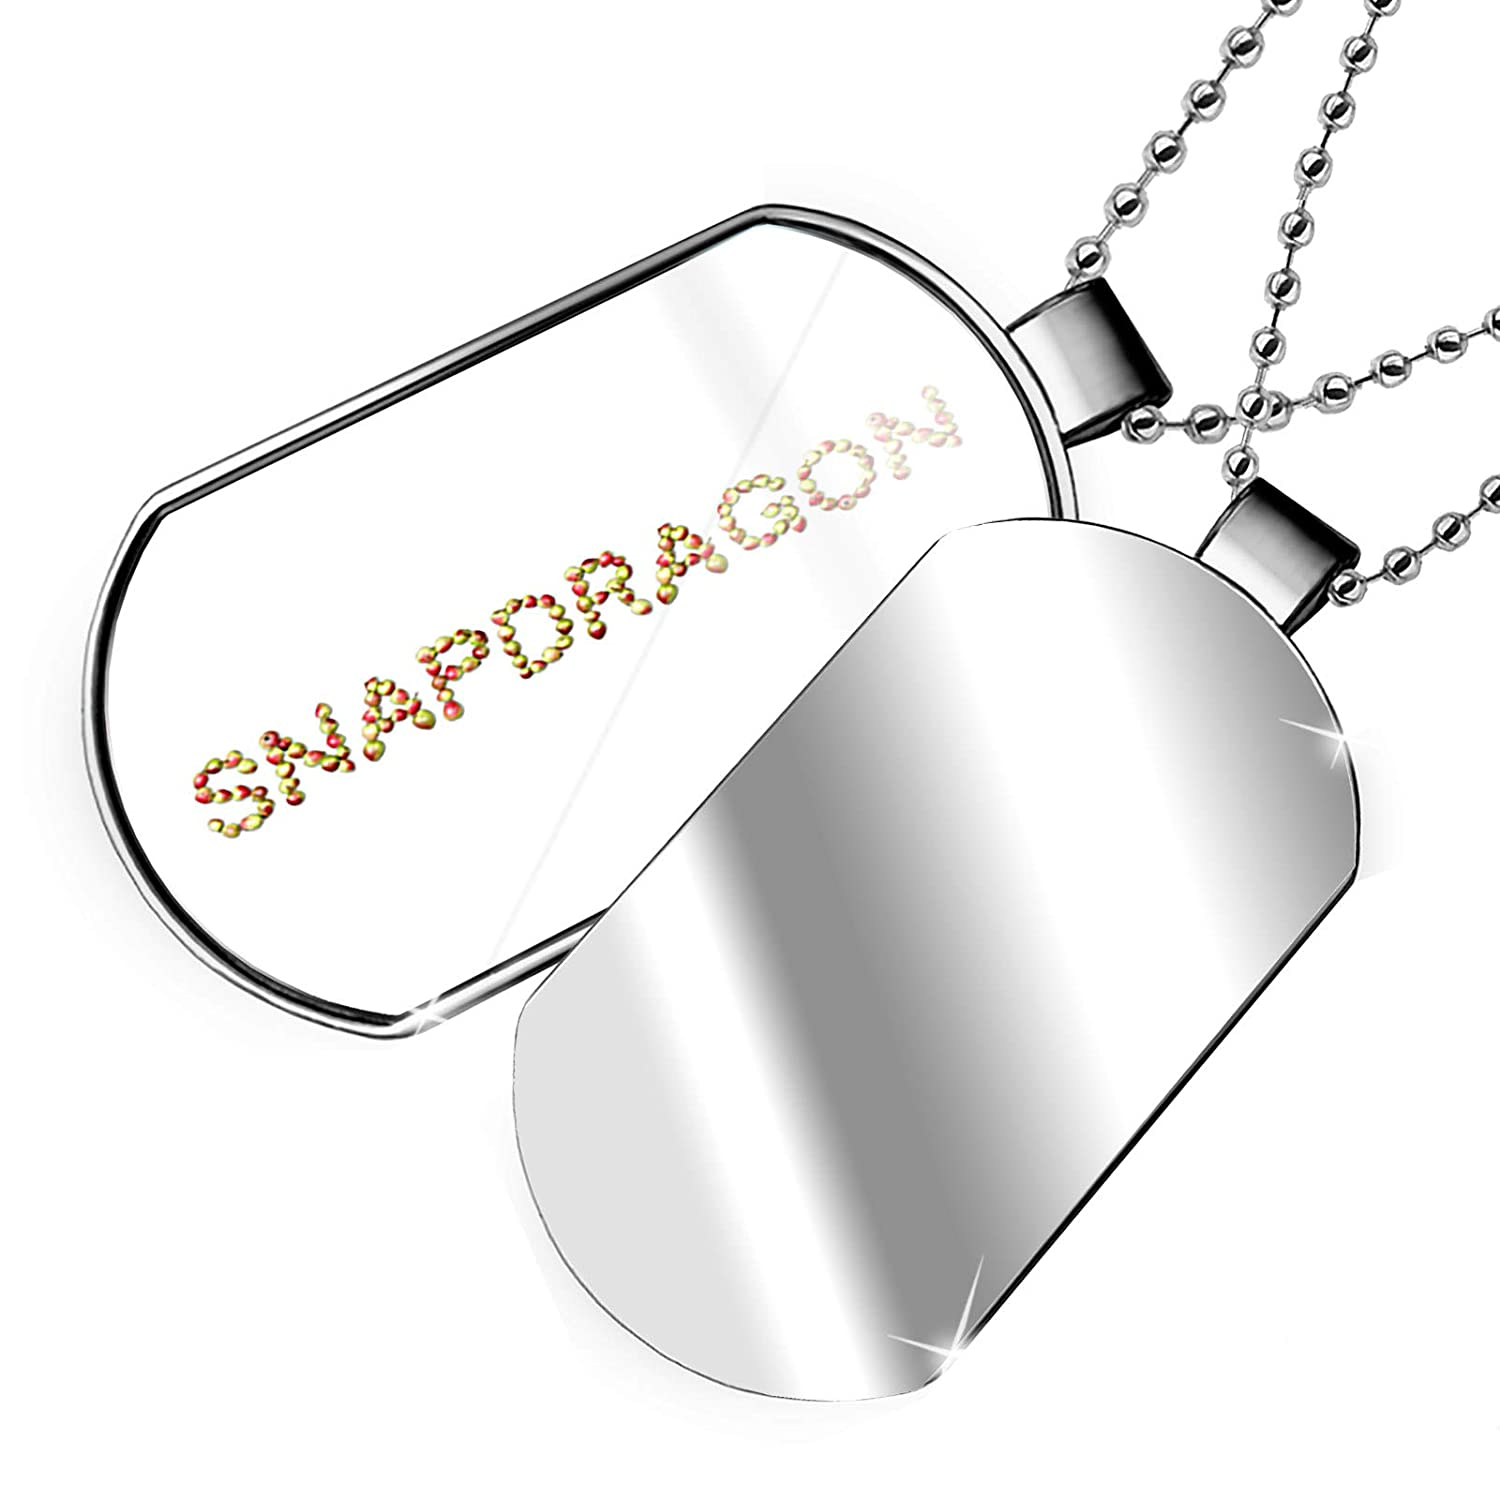 NEONBLOND Personalized Name Engraved Snapdragon Apples Dogtag Necklace